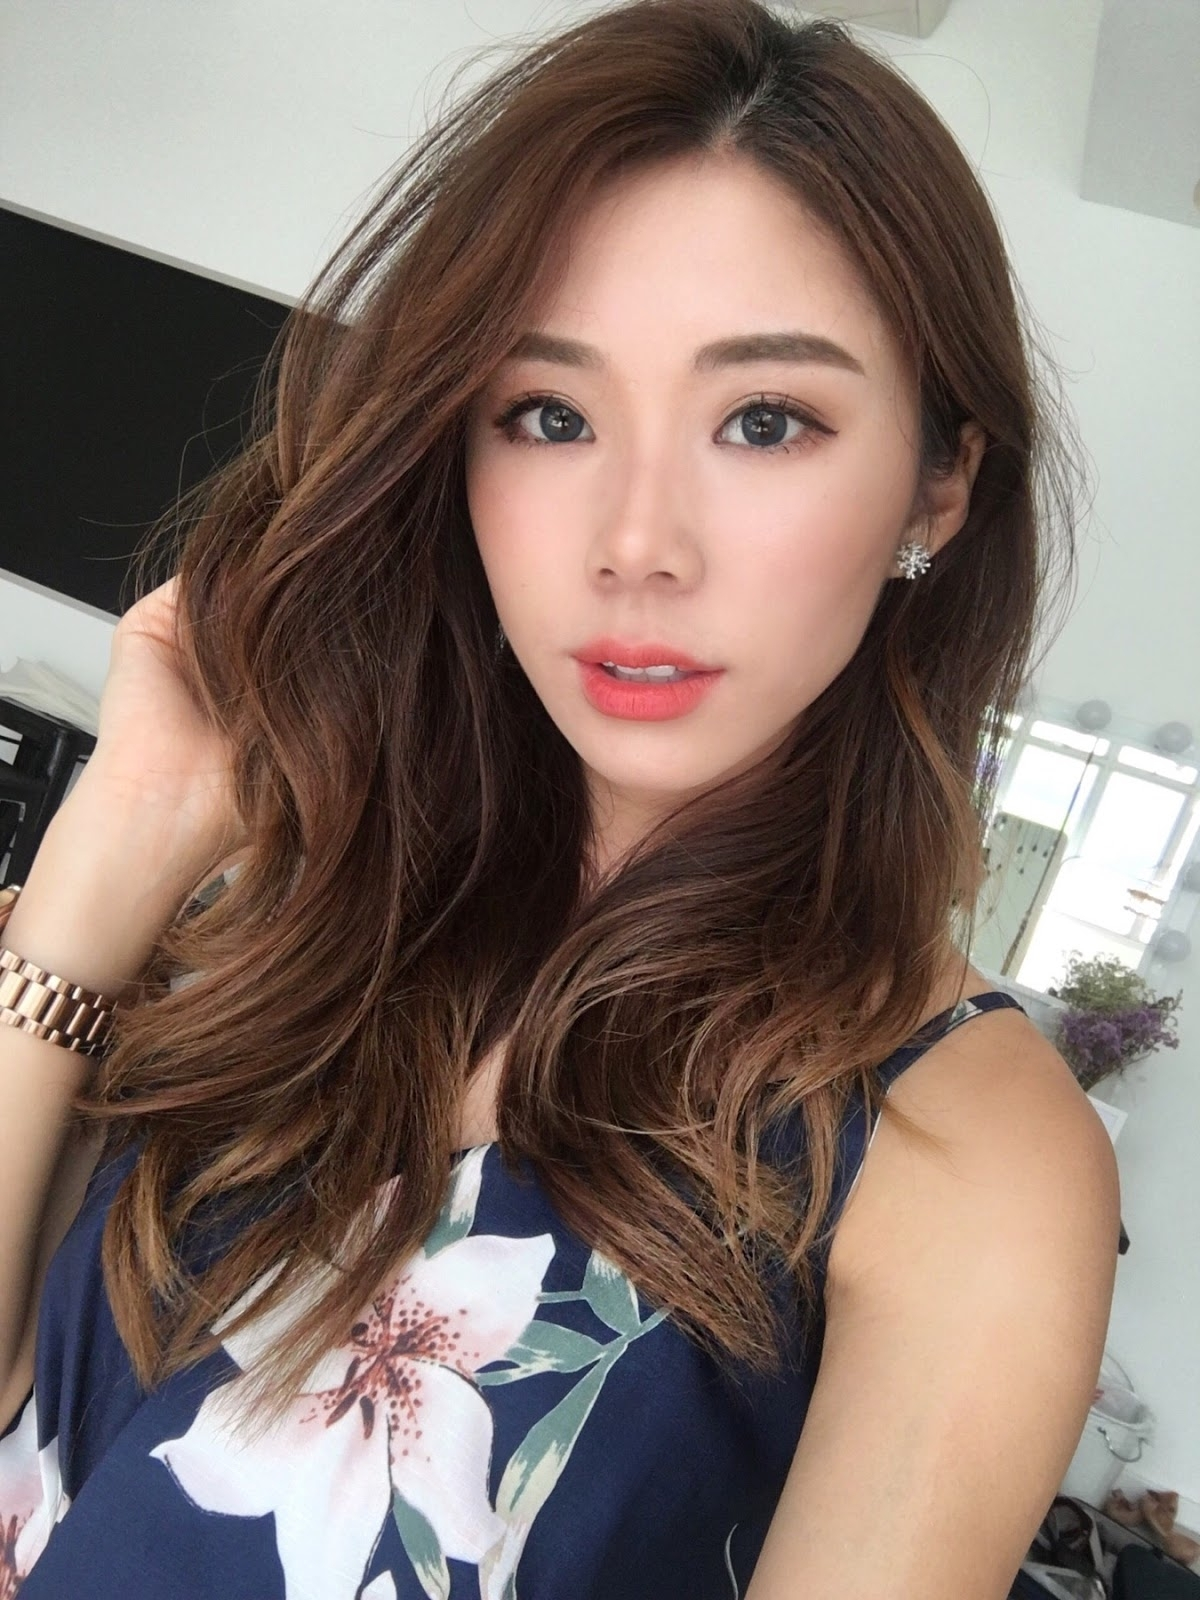 21 korean girl long hair wavy hairstyle for 2018 2019 nails c photos selections within our very best pictures gallery about choicest leading style 22 korean girl long hair wavy hairstyle lets hope you can as it voltagebd Images